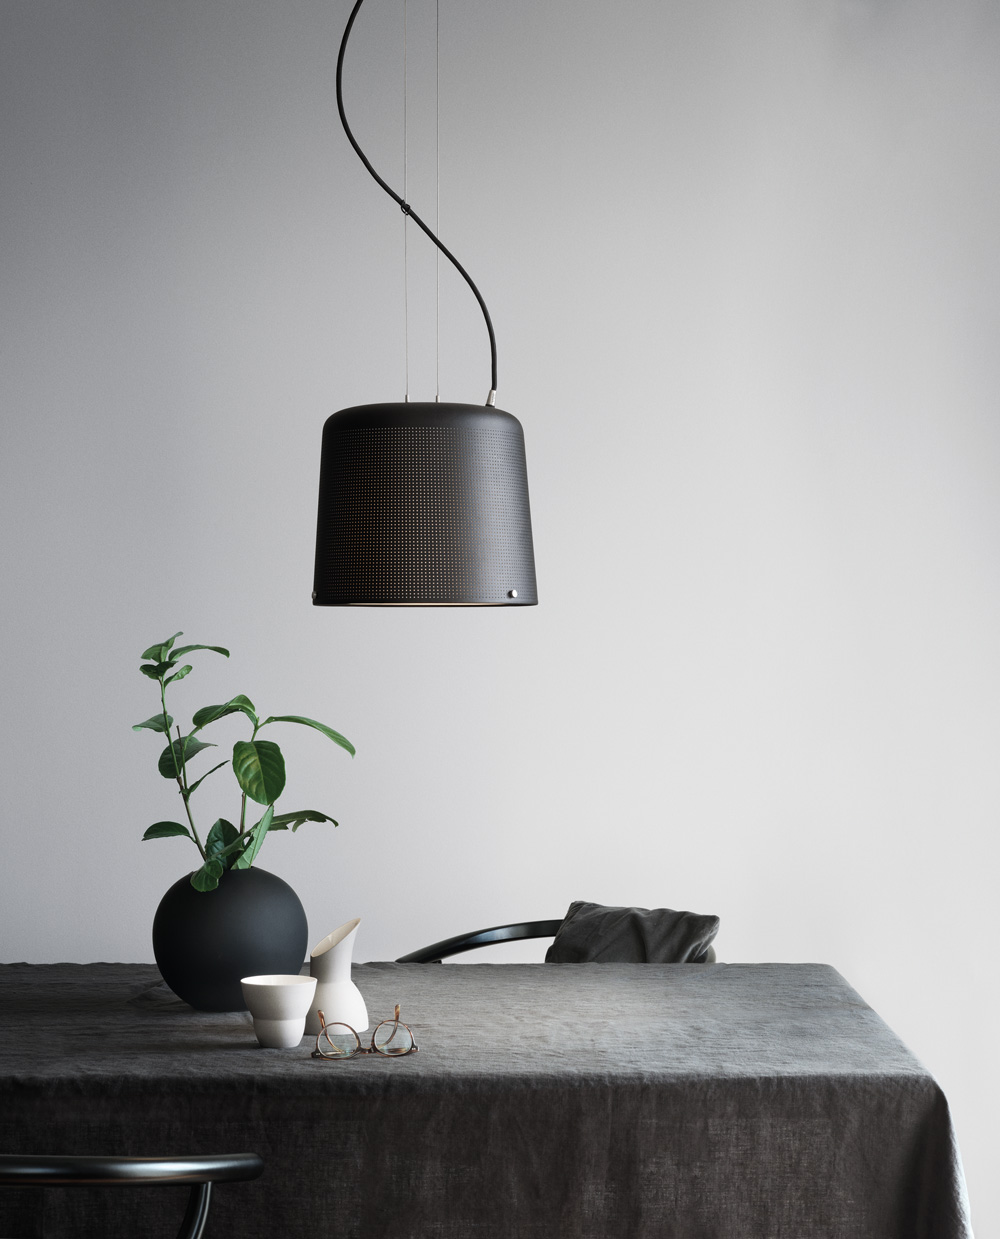 Vipp pendant light | Design Hunter